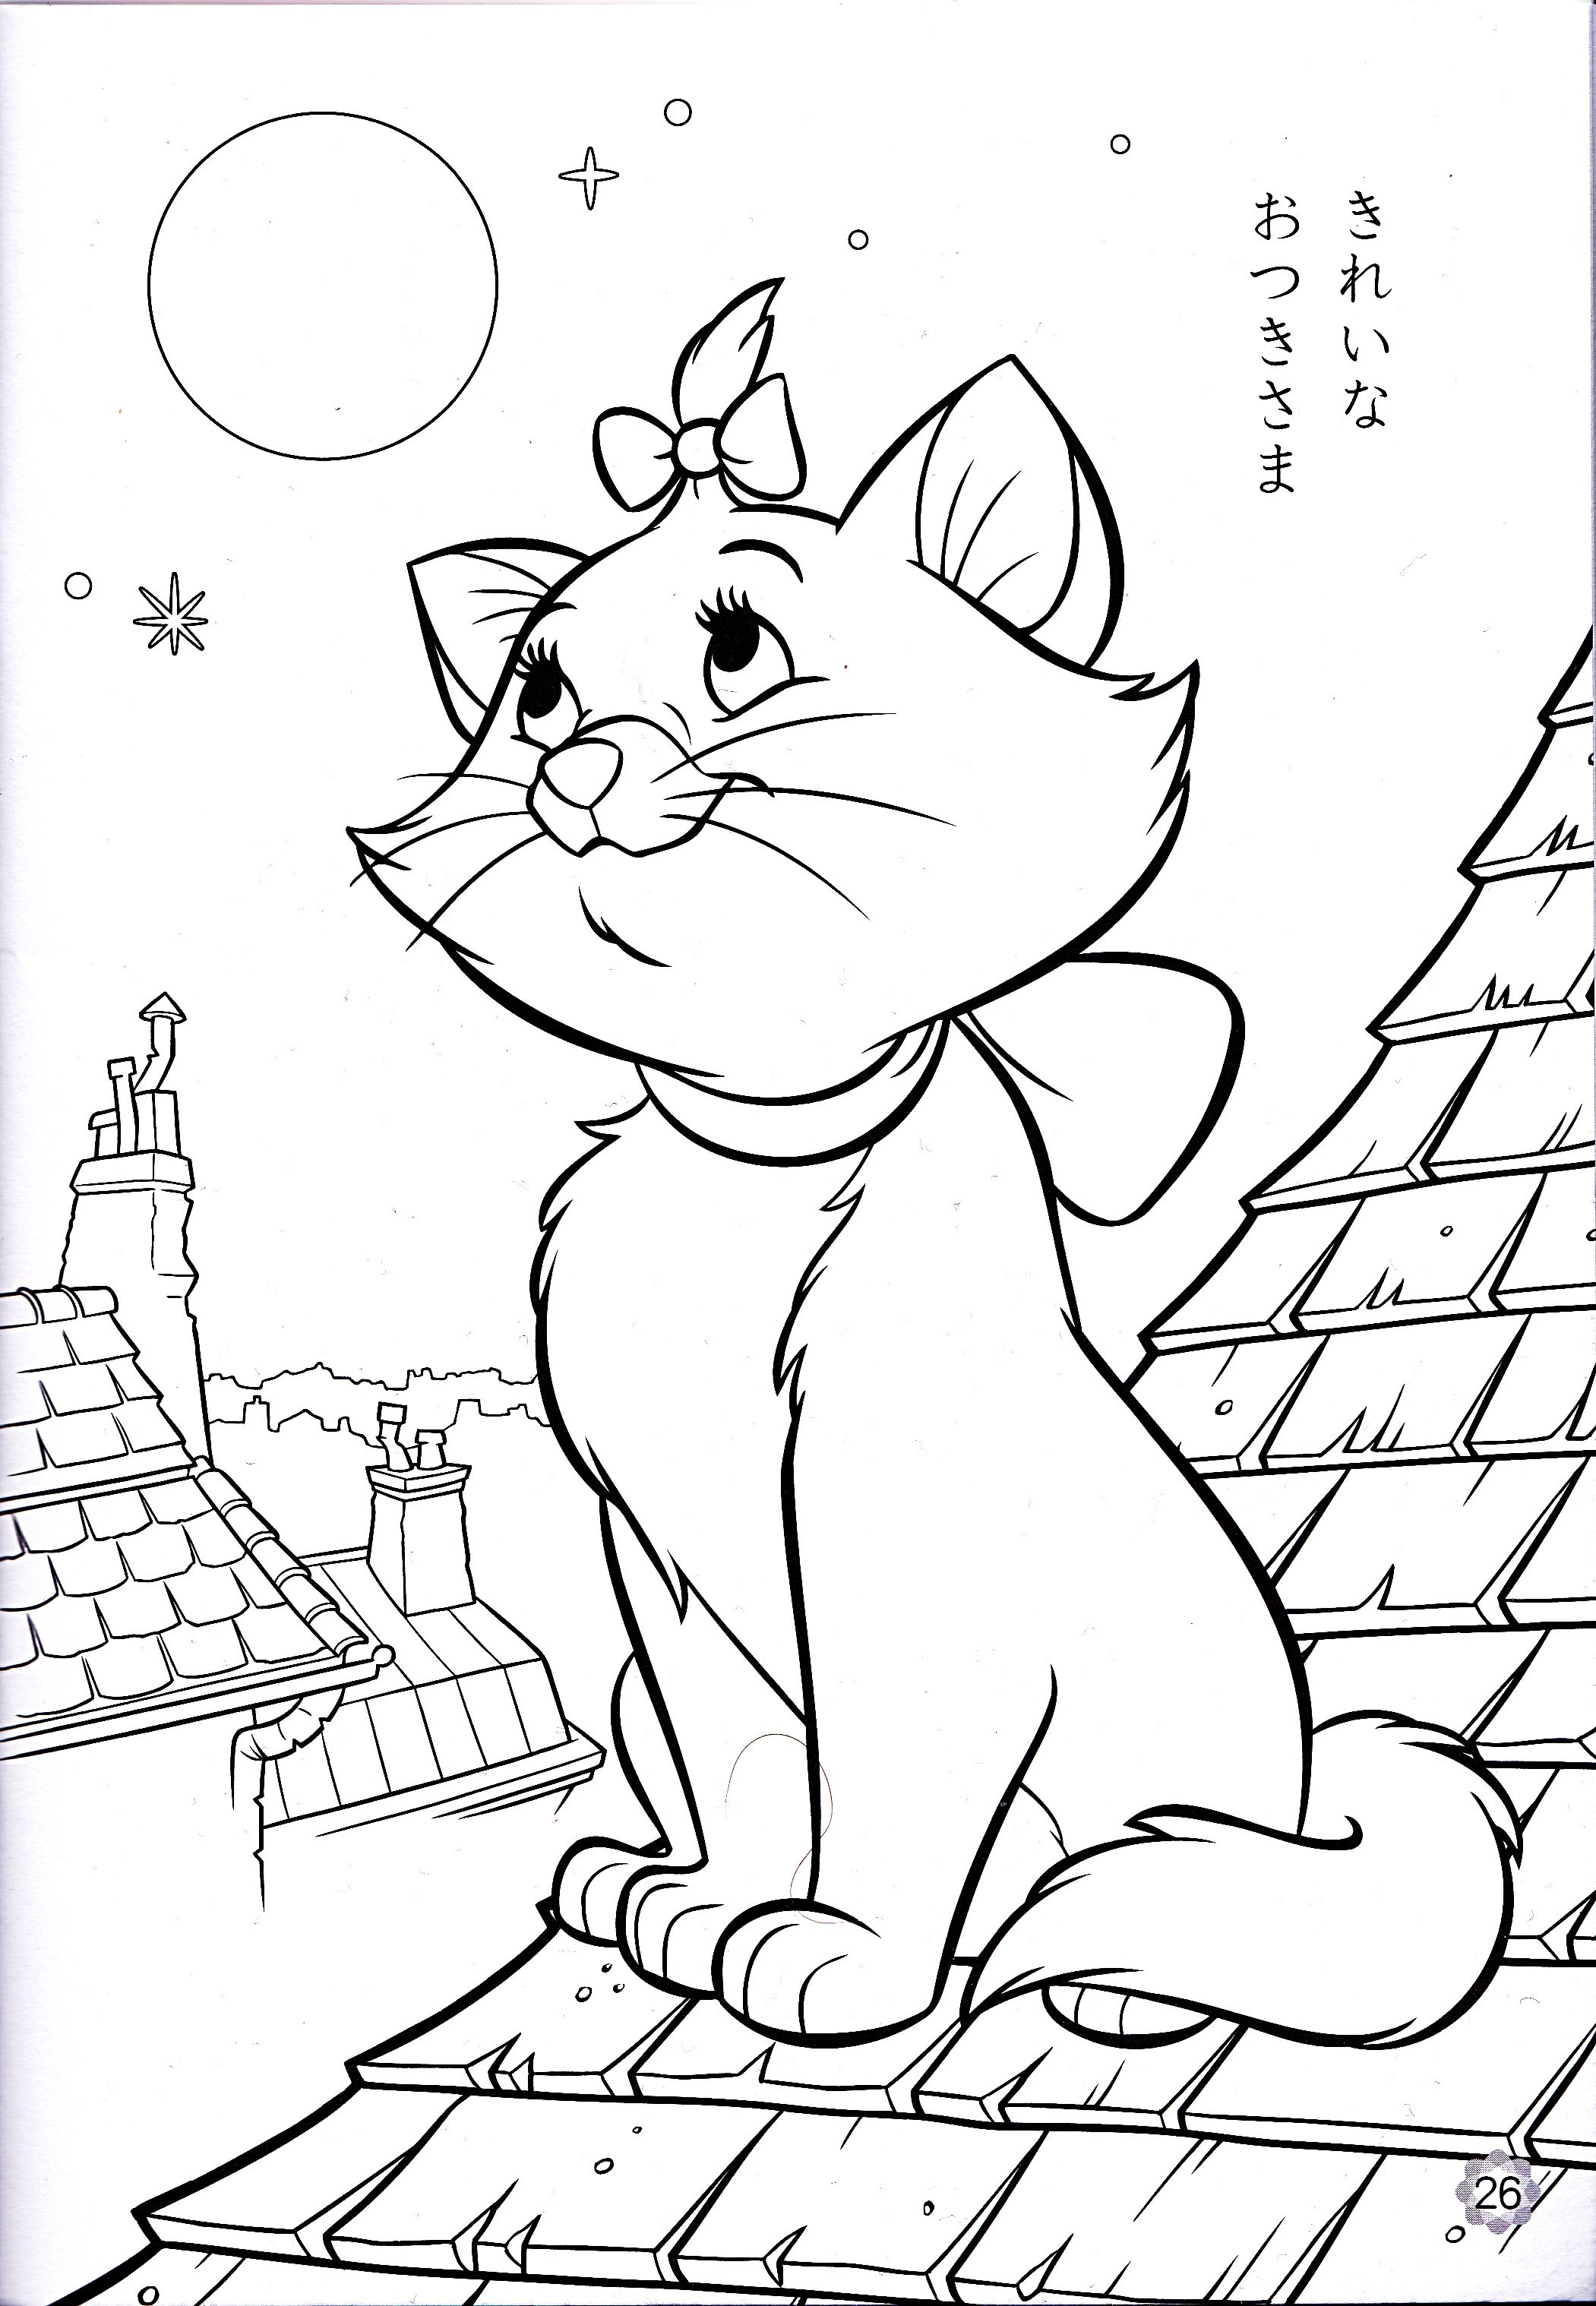 Kitten Marie Antoniet | Disney Line Drawing | Pinterest ...